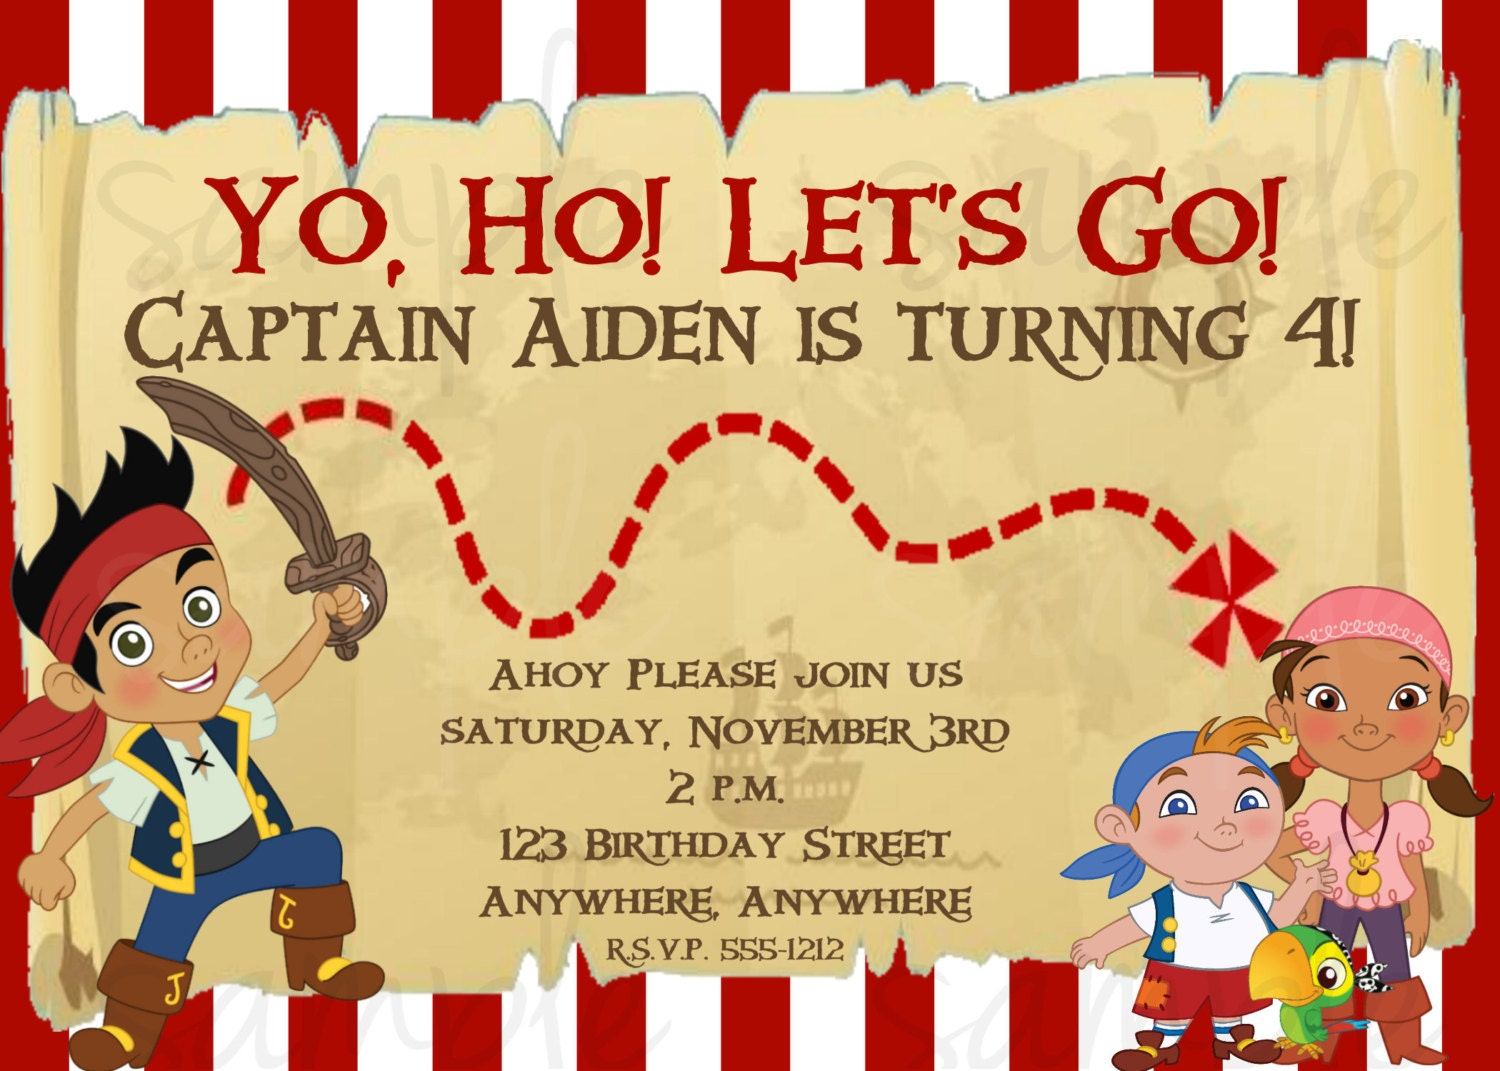 Jake and the neverland pirates party invitations - photo#6